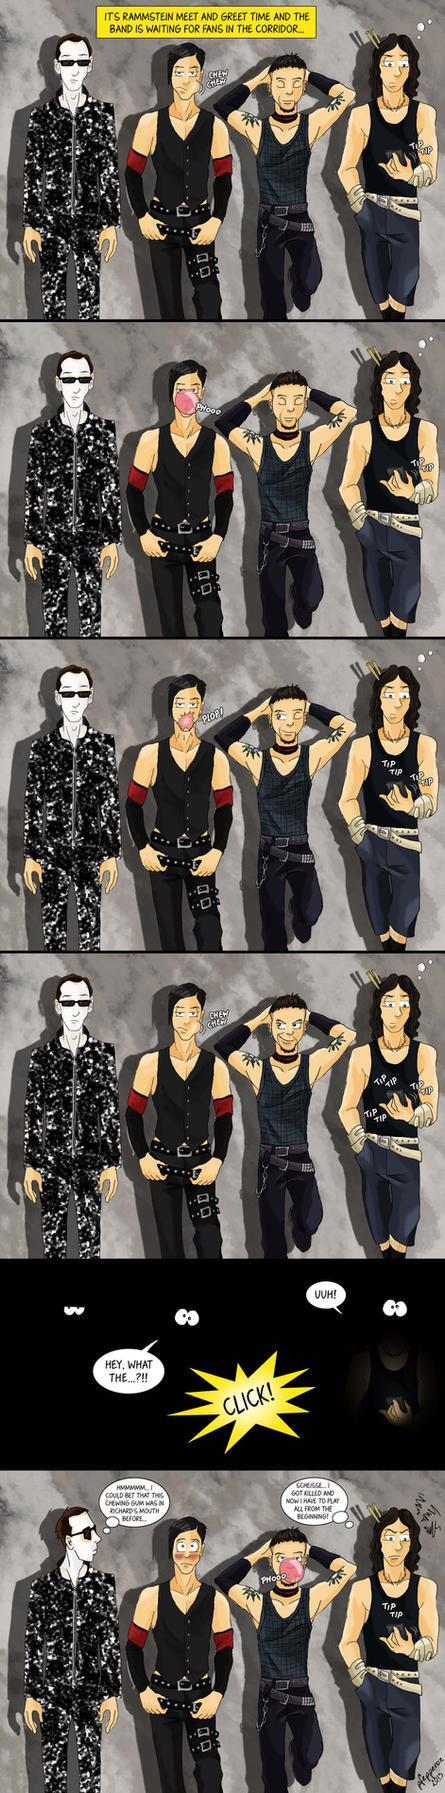 Rammstein favourites by kdick0987654321 on deviantart dr albicilla 45 24 our guys are bored by pfepperon m4hsunfo